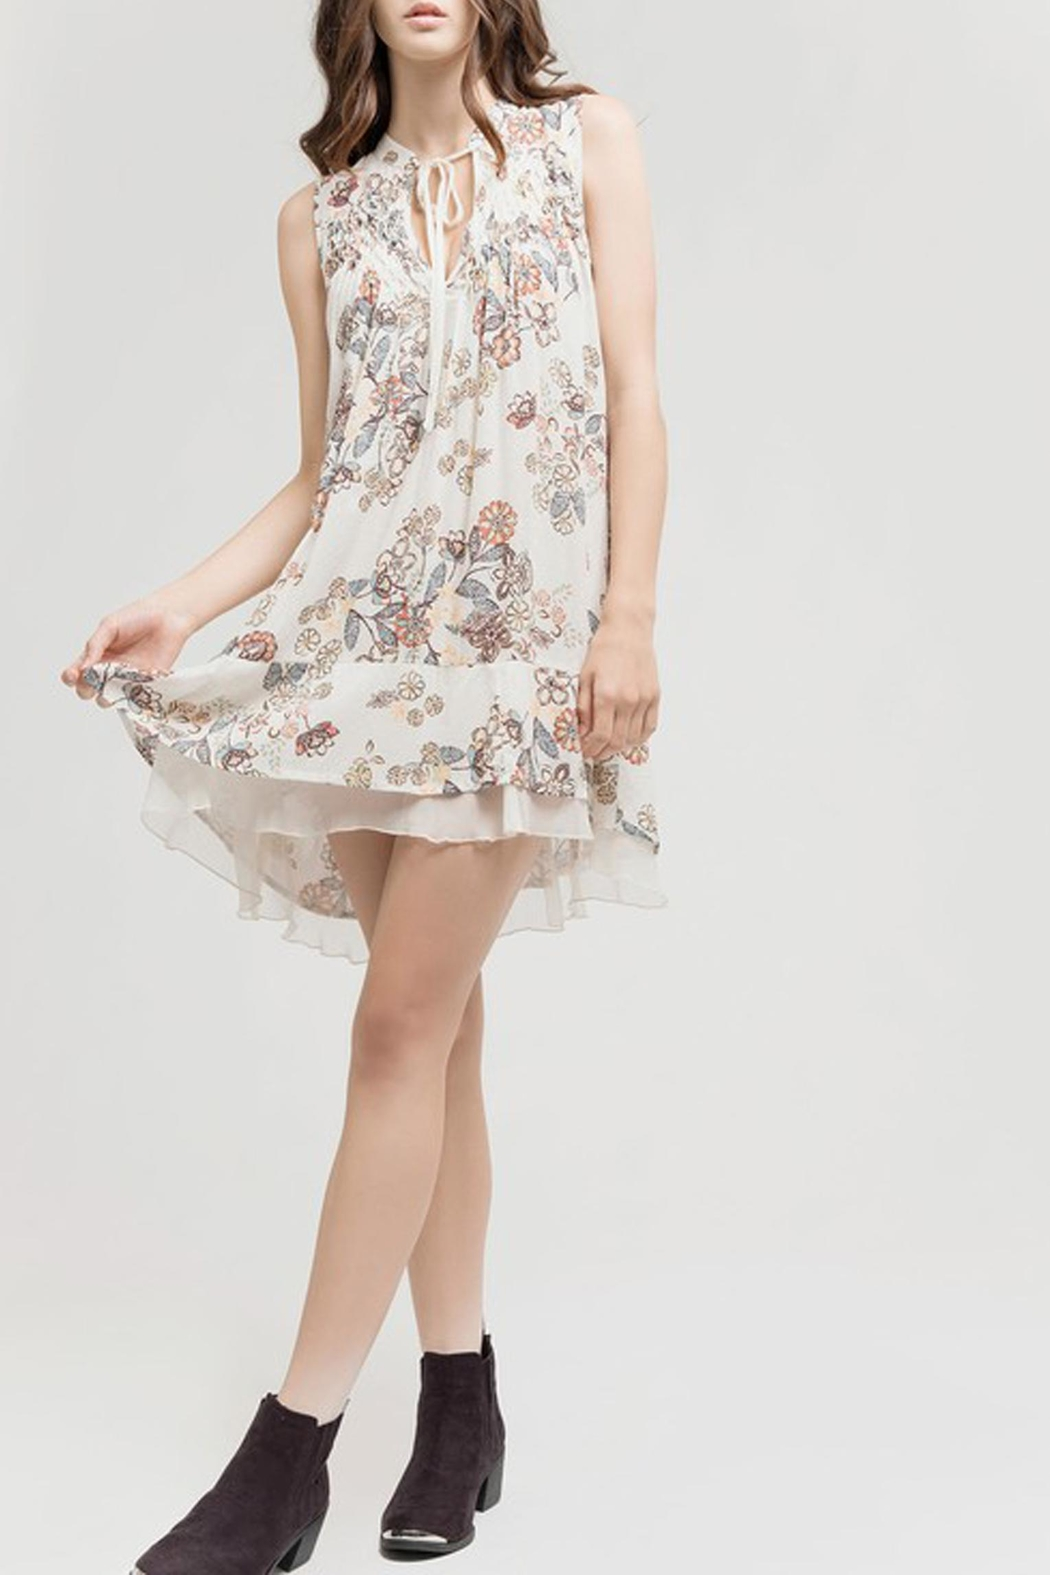 Blu Pepper Tan Floral Dress - Front Cropped Image